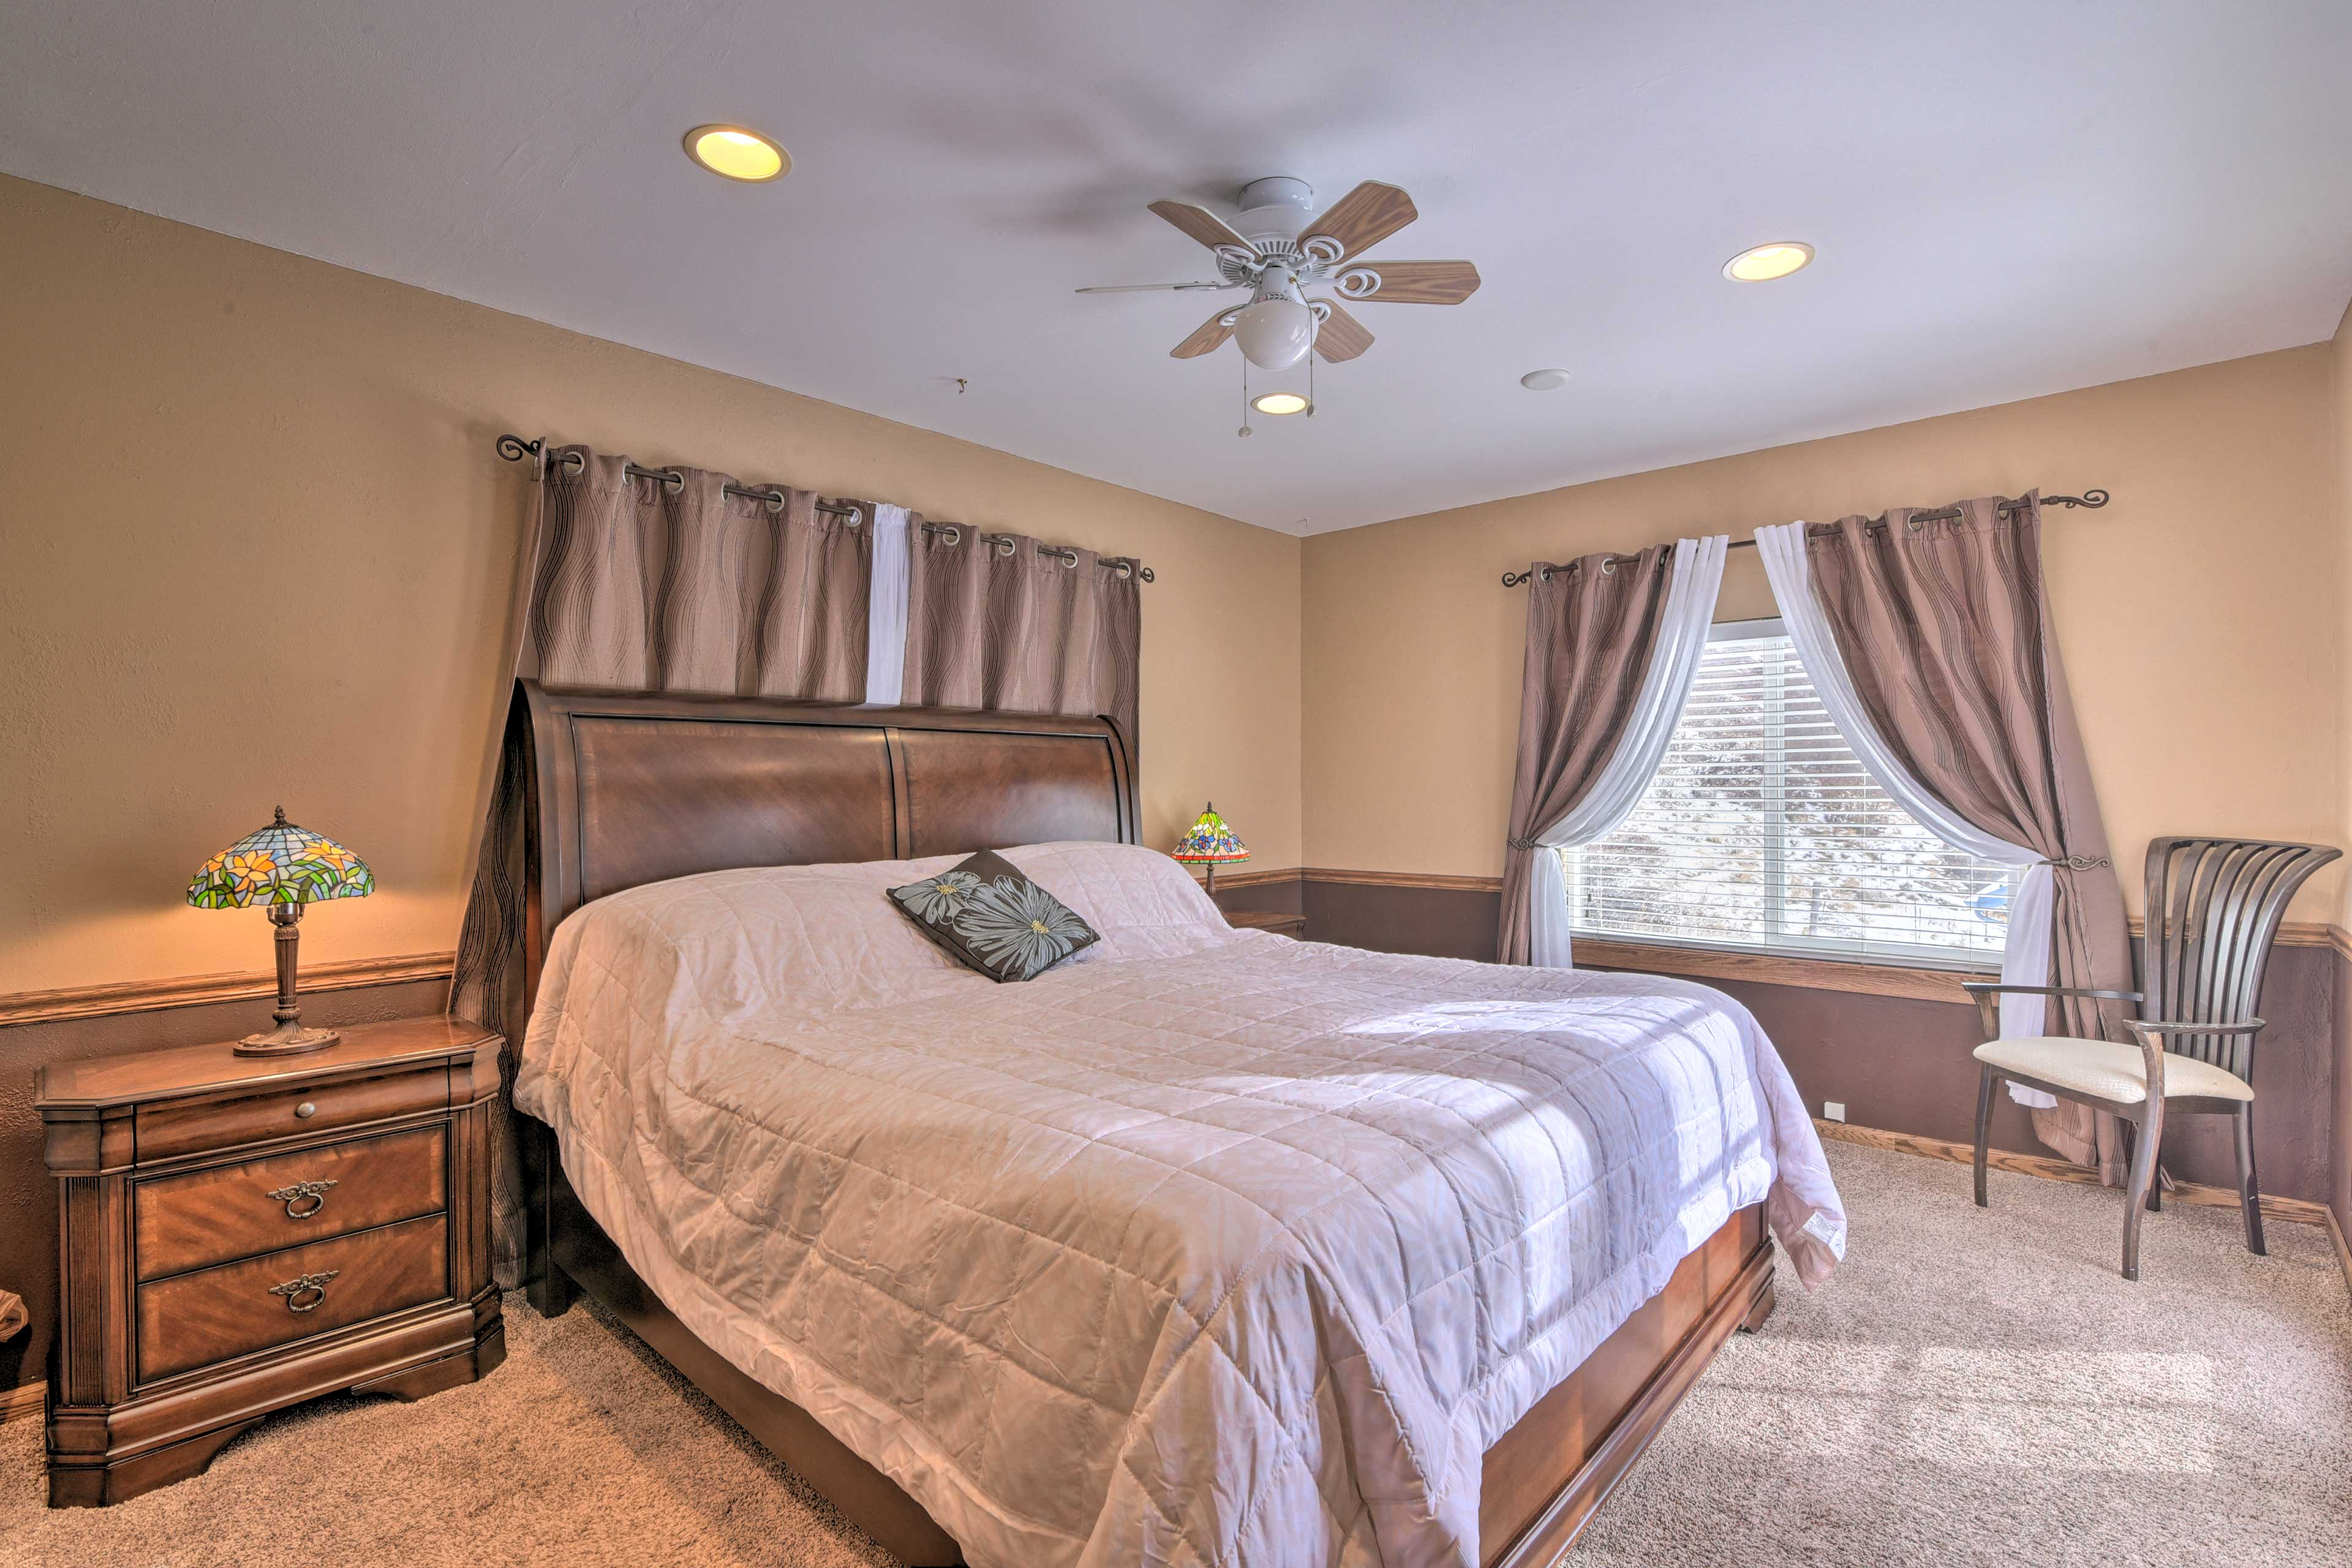 This bedroom sleeps 2 in a cozy king bed.